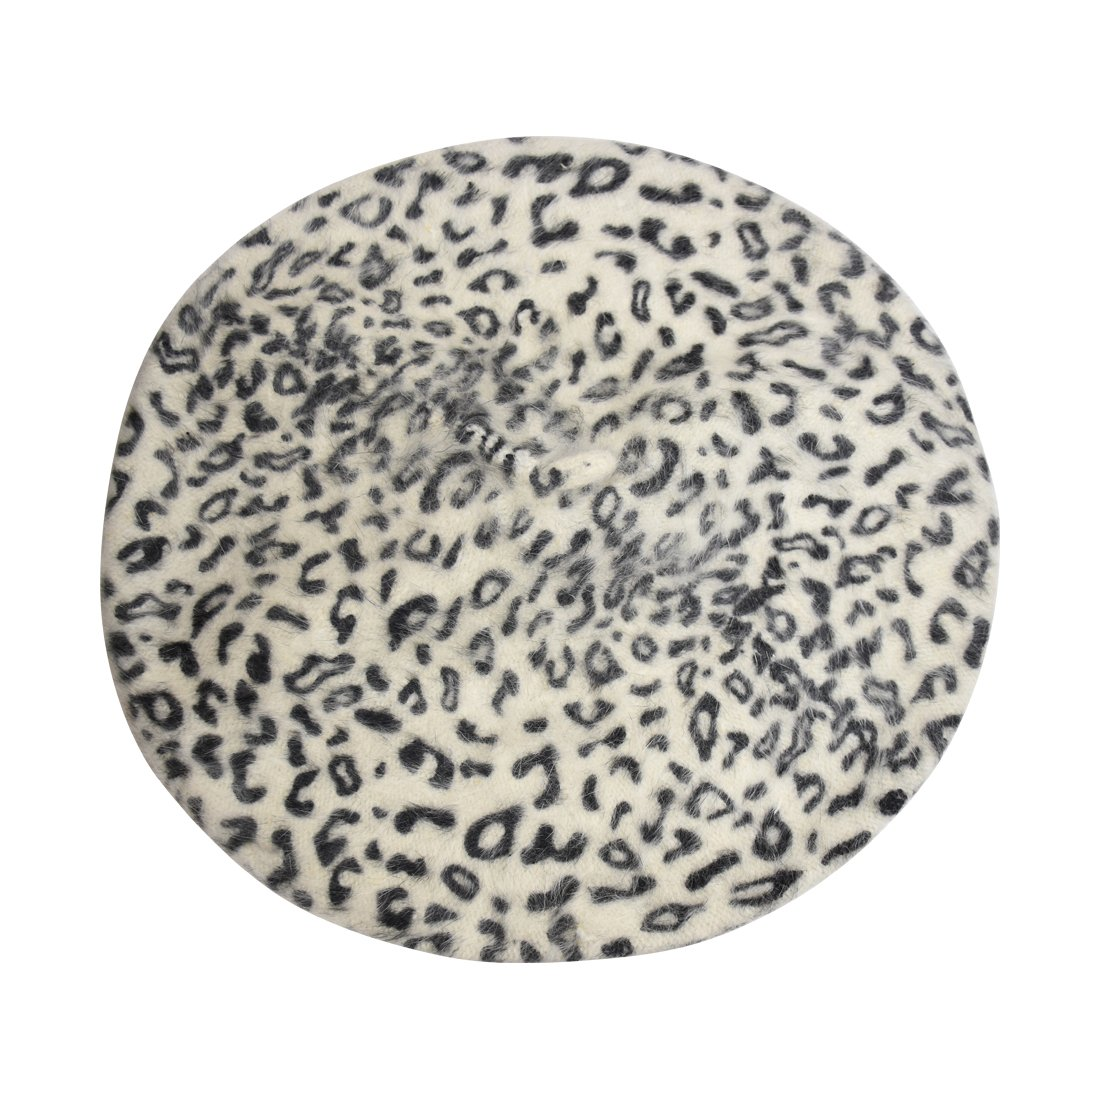 Landana Headscarves Wool Ladies Winter Beret - White Leopard